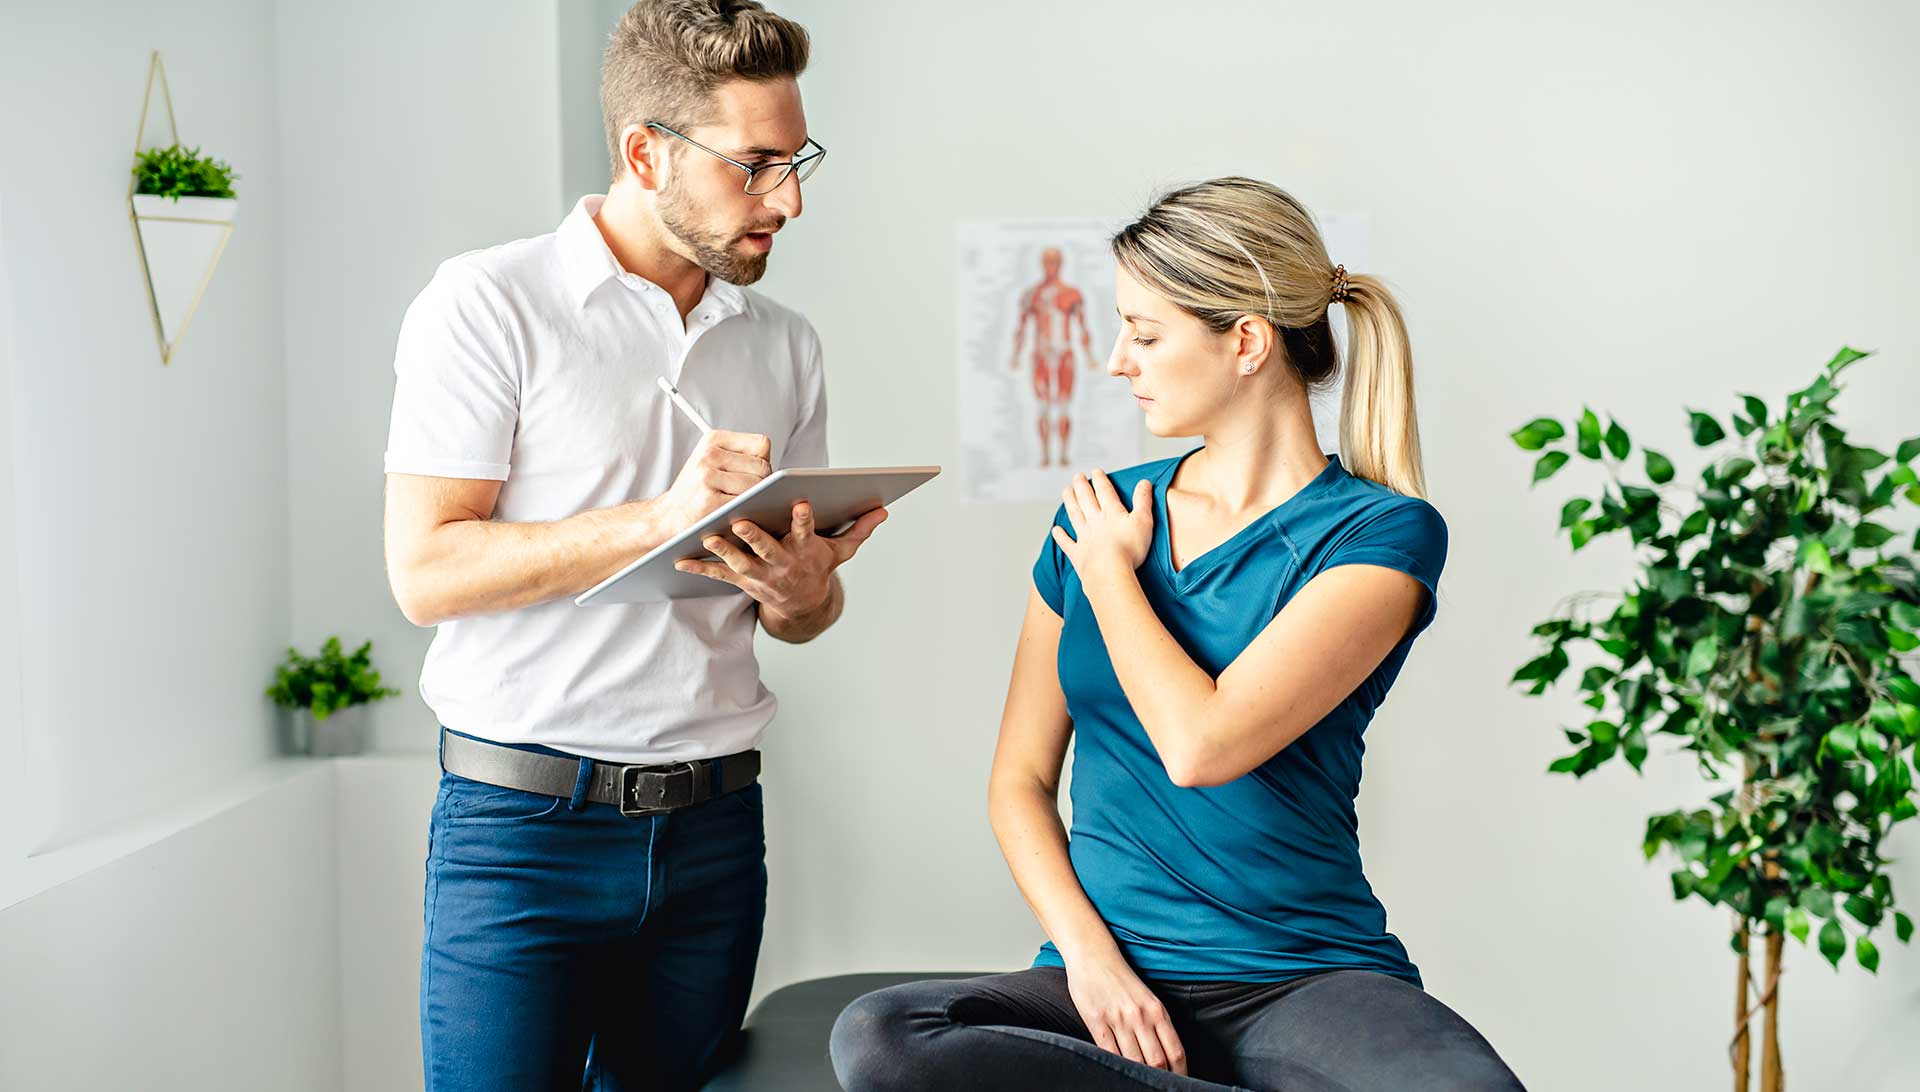 Benefits Of Availing Professional Chiropractic Services